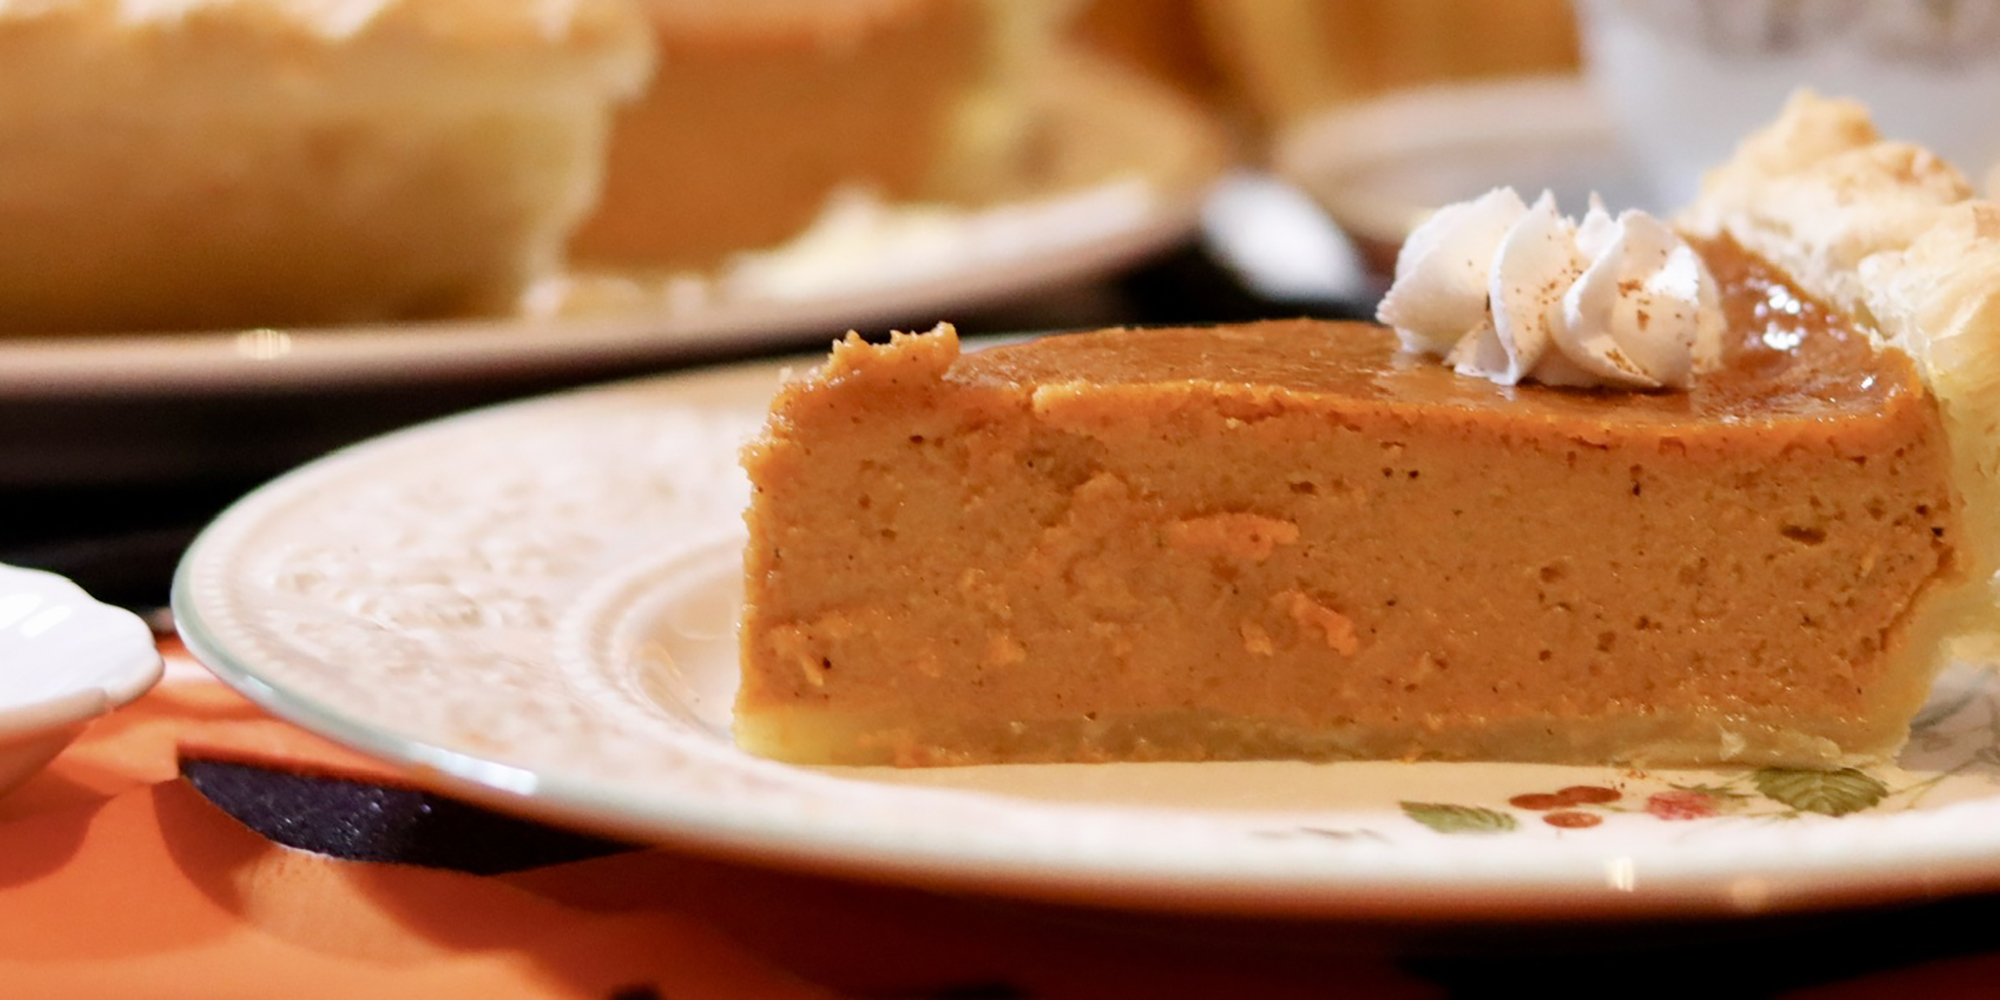 close up on a slice of perfect pumpkin pie topped with a dollop of whipped cream.